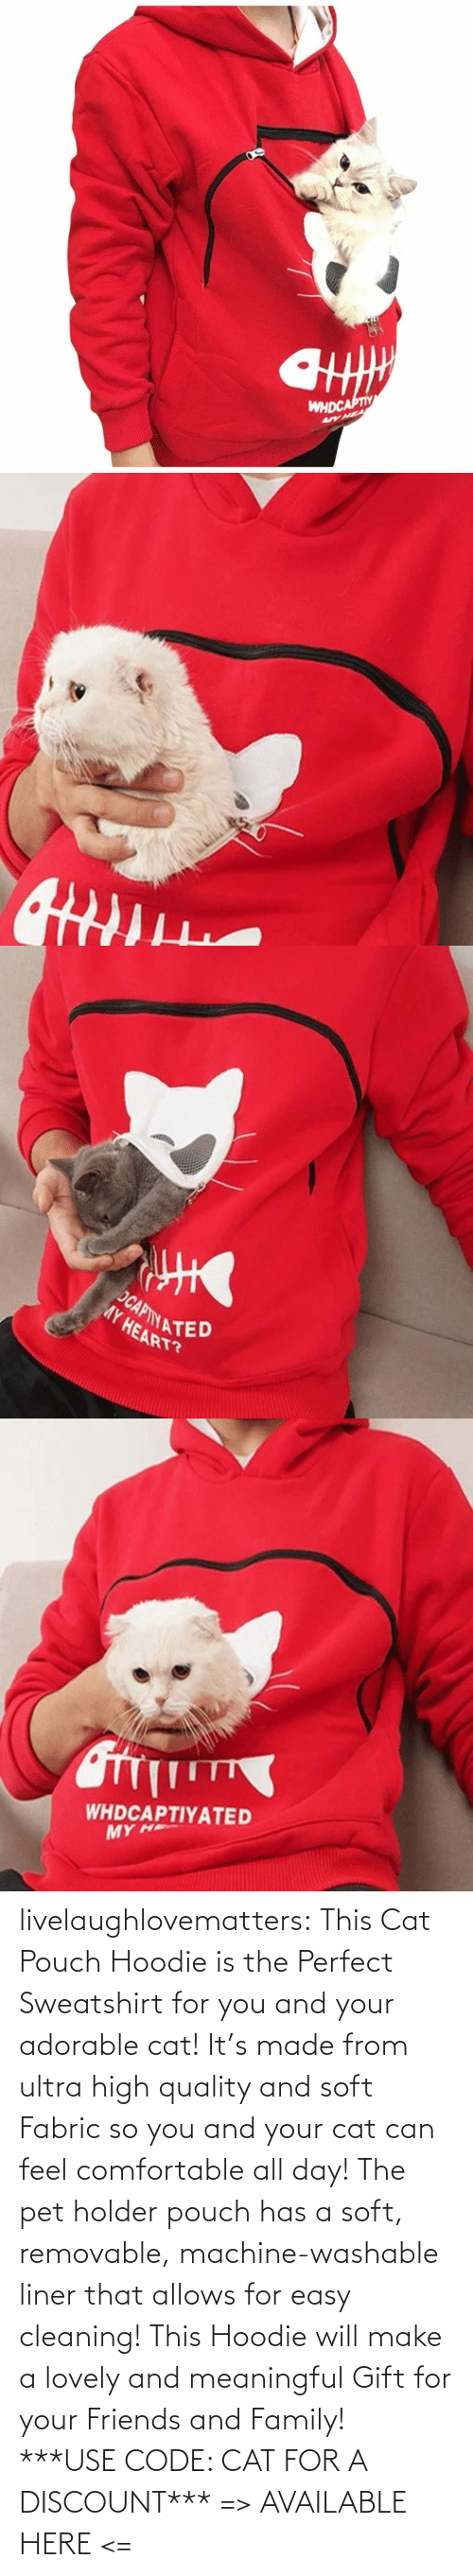 Comfortable, Family, and Friends: livelaughlovematters: This Cat Pouch Hoodie is the Perfect Sweatshirt for you and your adorable cat! It's made from ultra high quality and soft Fabric so you and your cat can feel comfortable all day! The pet holder pouch has a soft, removable, machine-washable liner that allows for easy cleaning! This Hoodie will make a lovely and meaningful Gift for your Friends and Family!  ***USE CODE: CAT FOR A DISCOUNT*** => AVAILABLE HERE <=